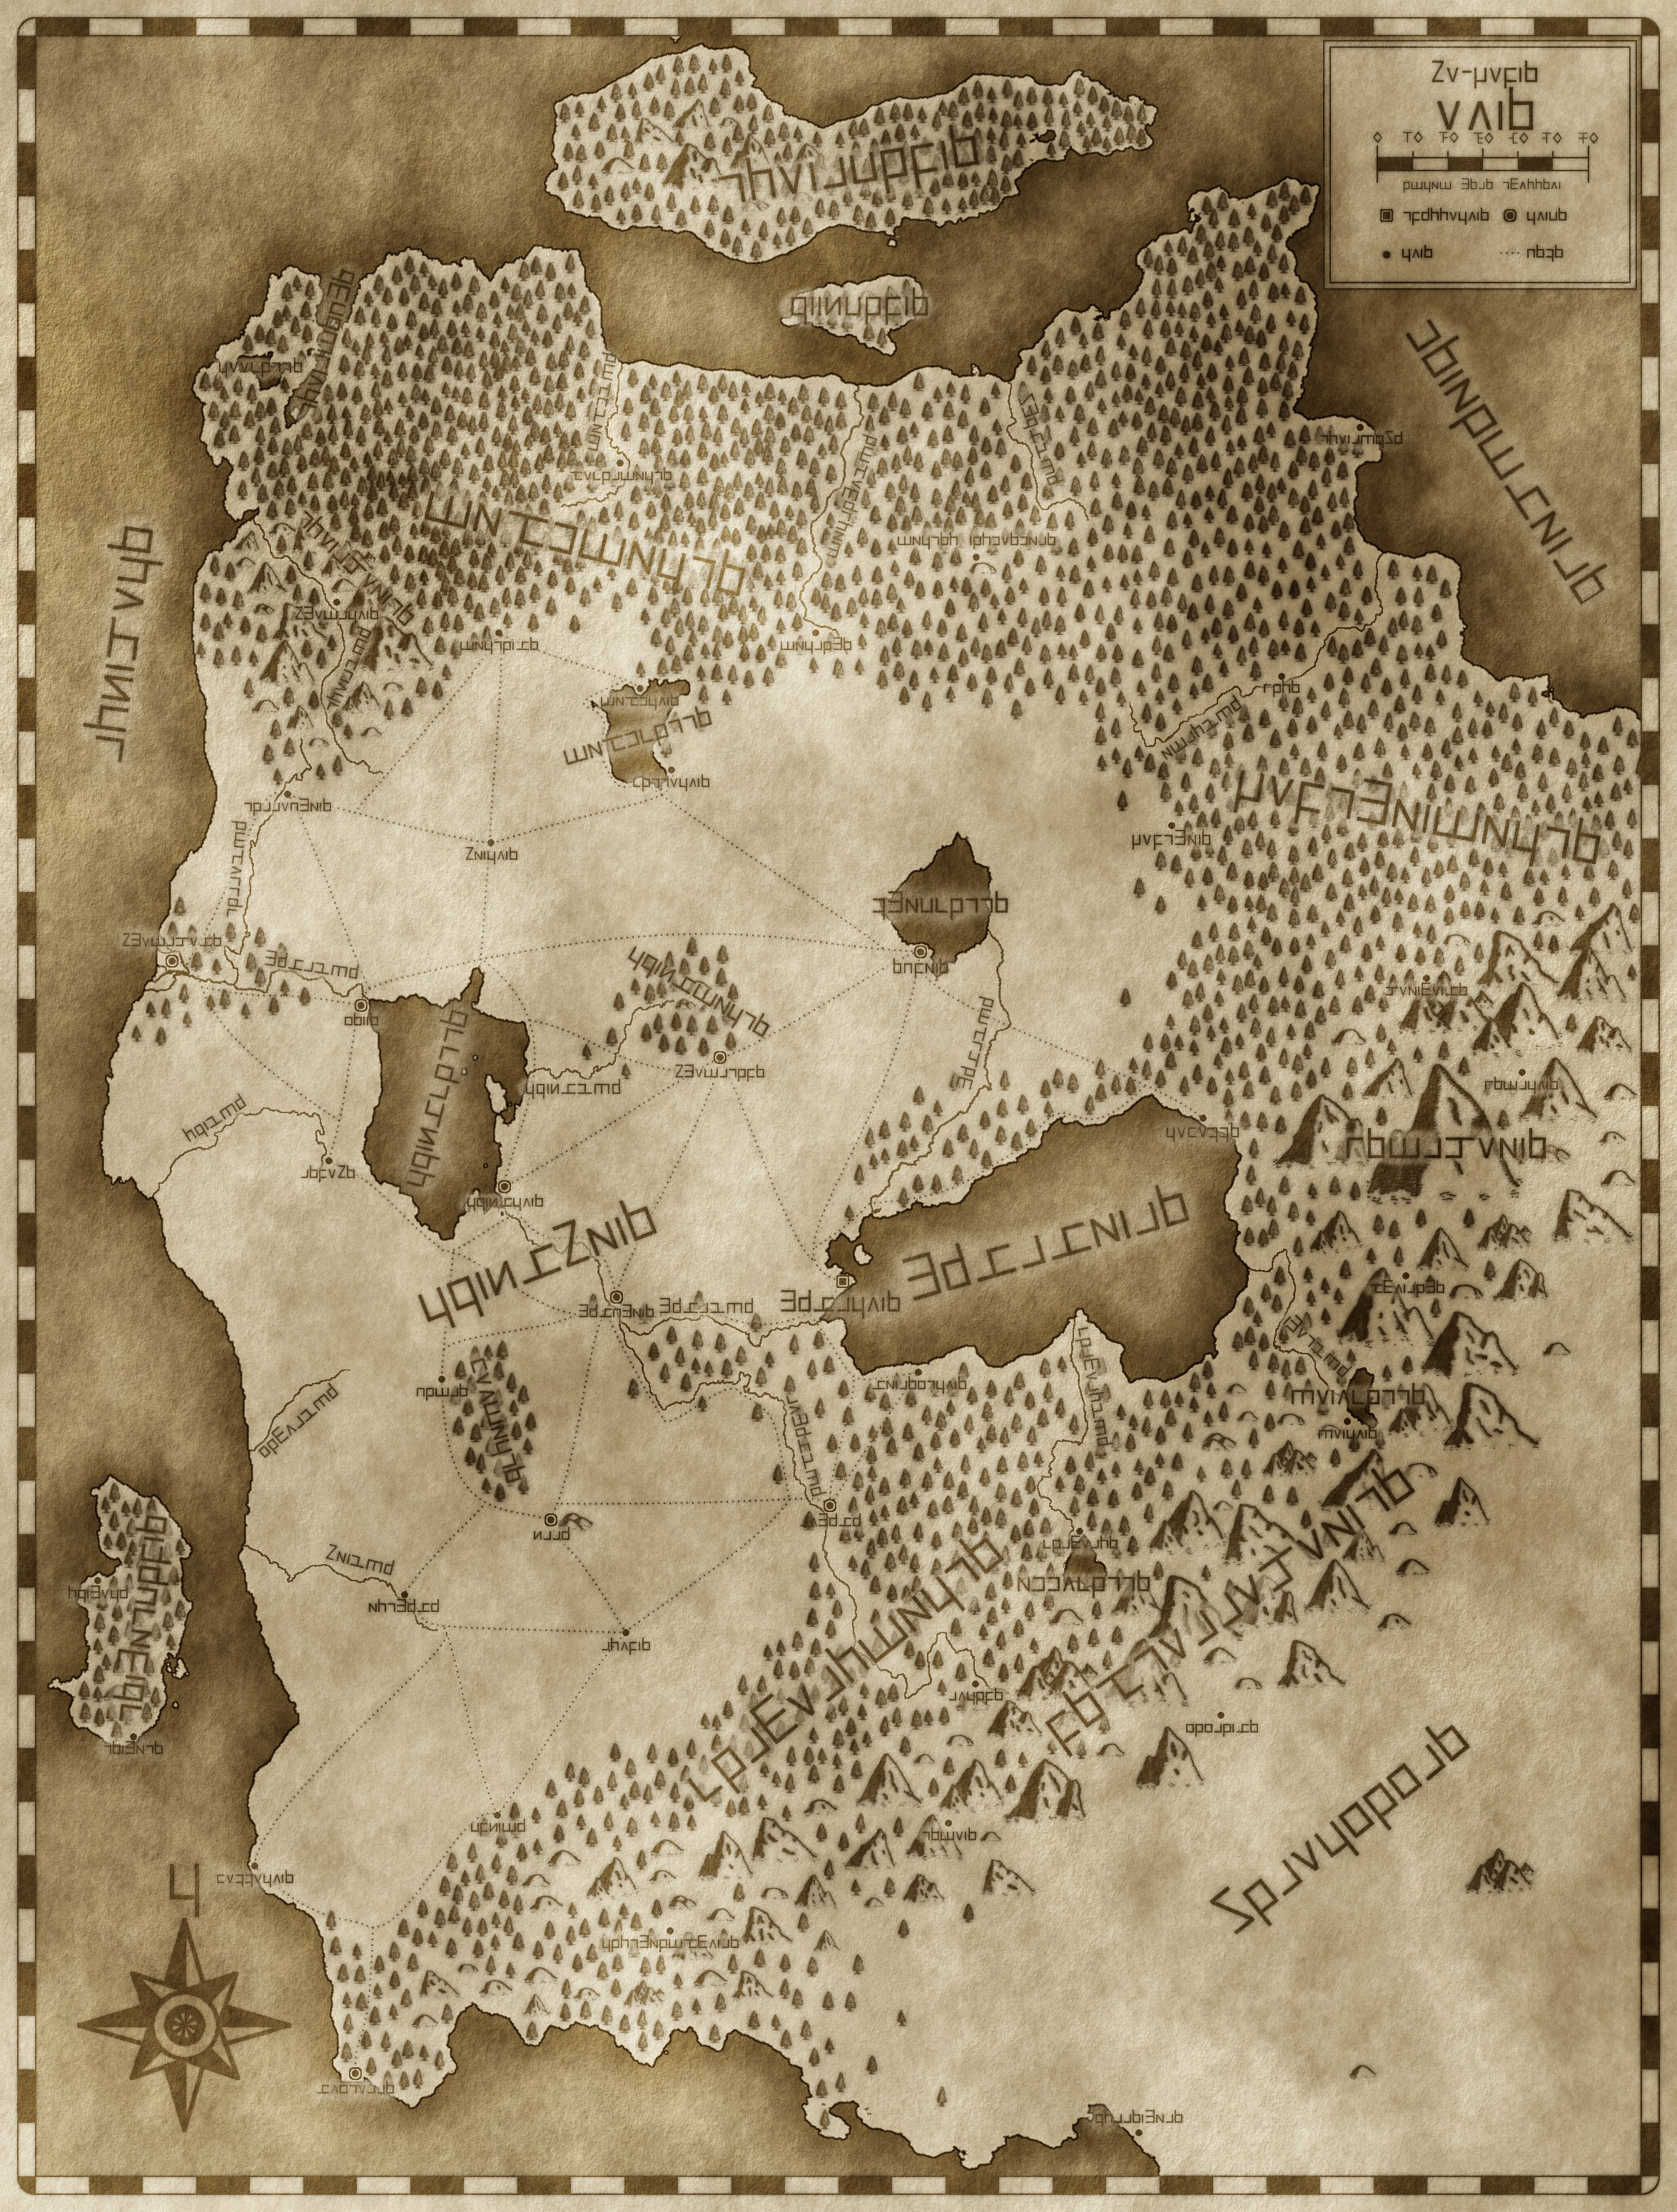 Eino Old Map